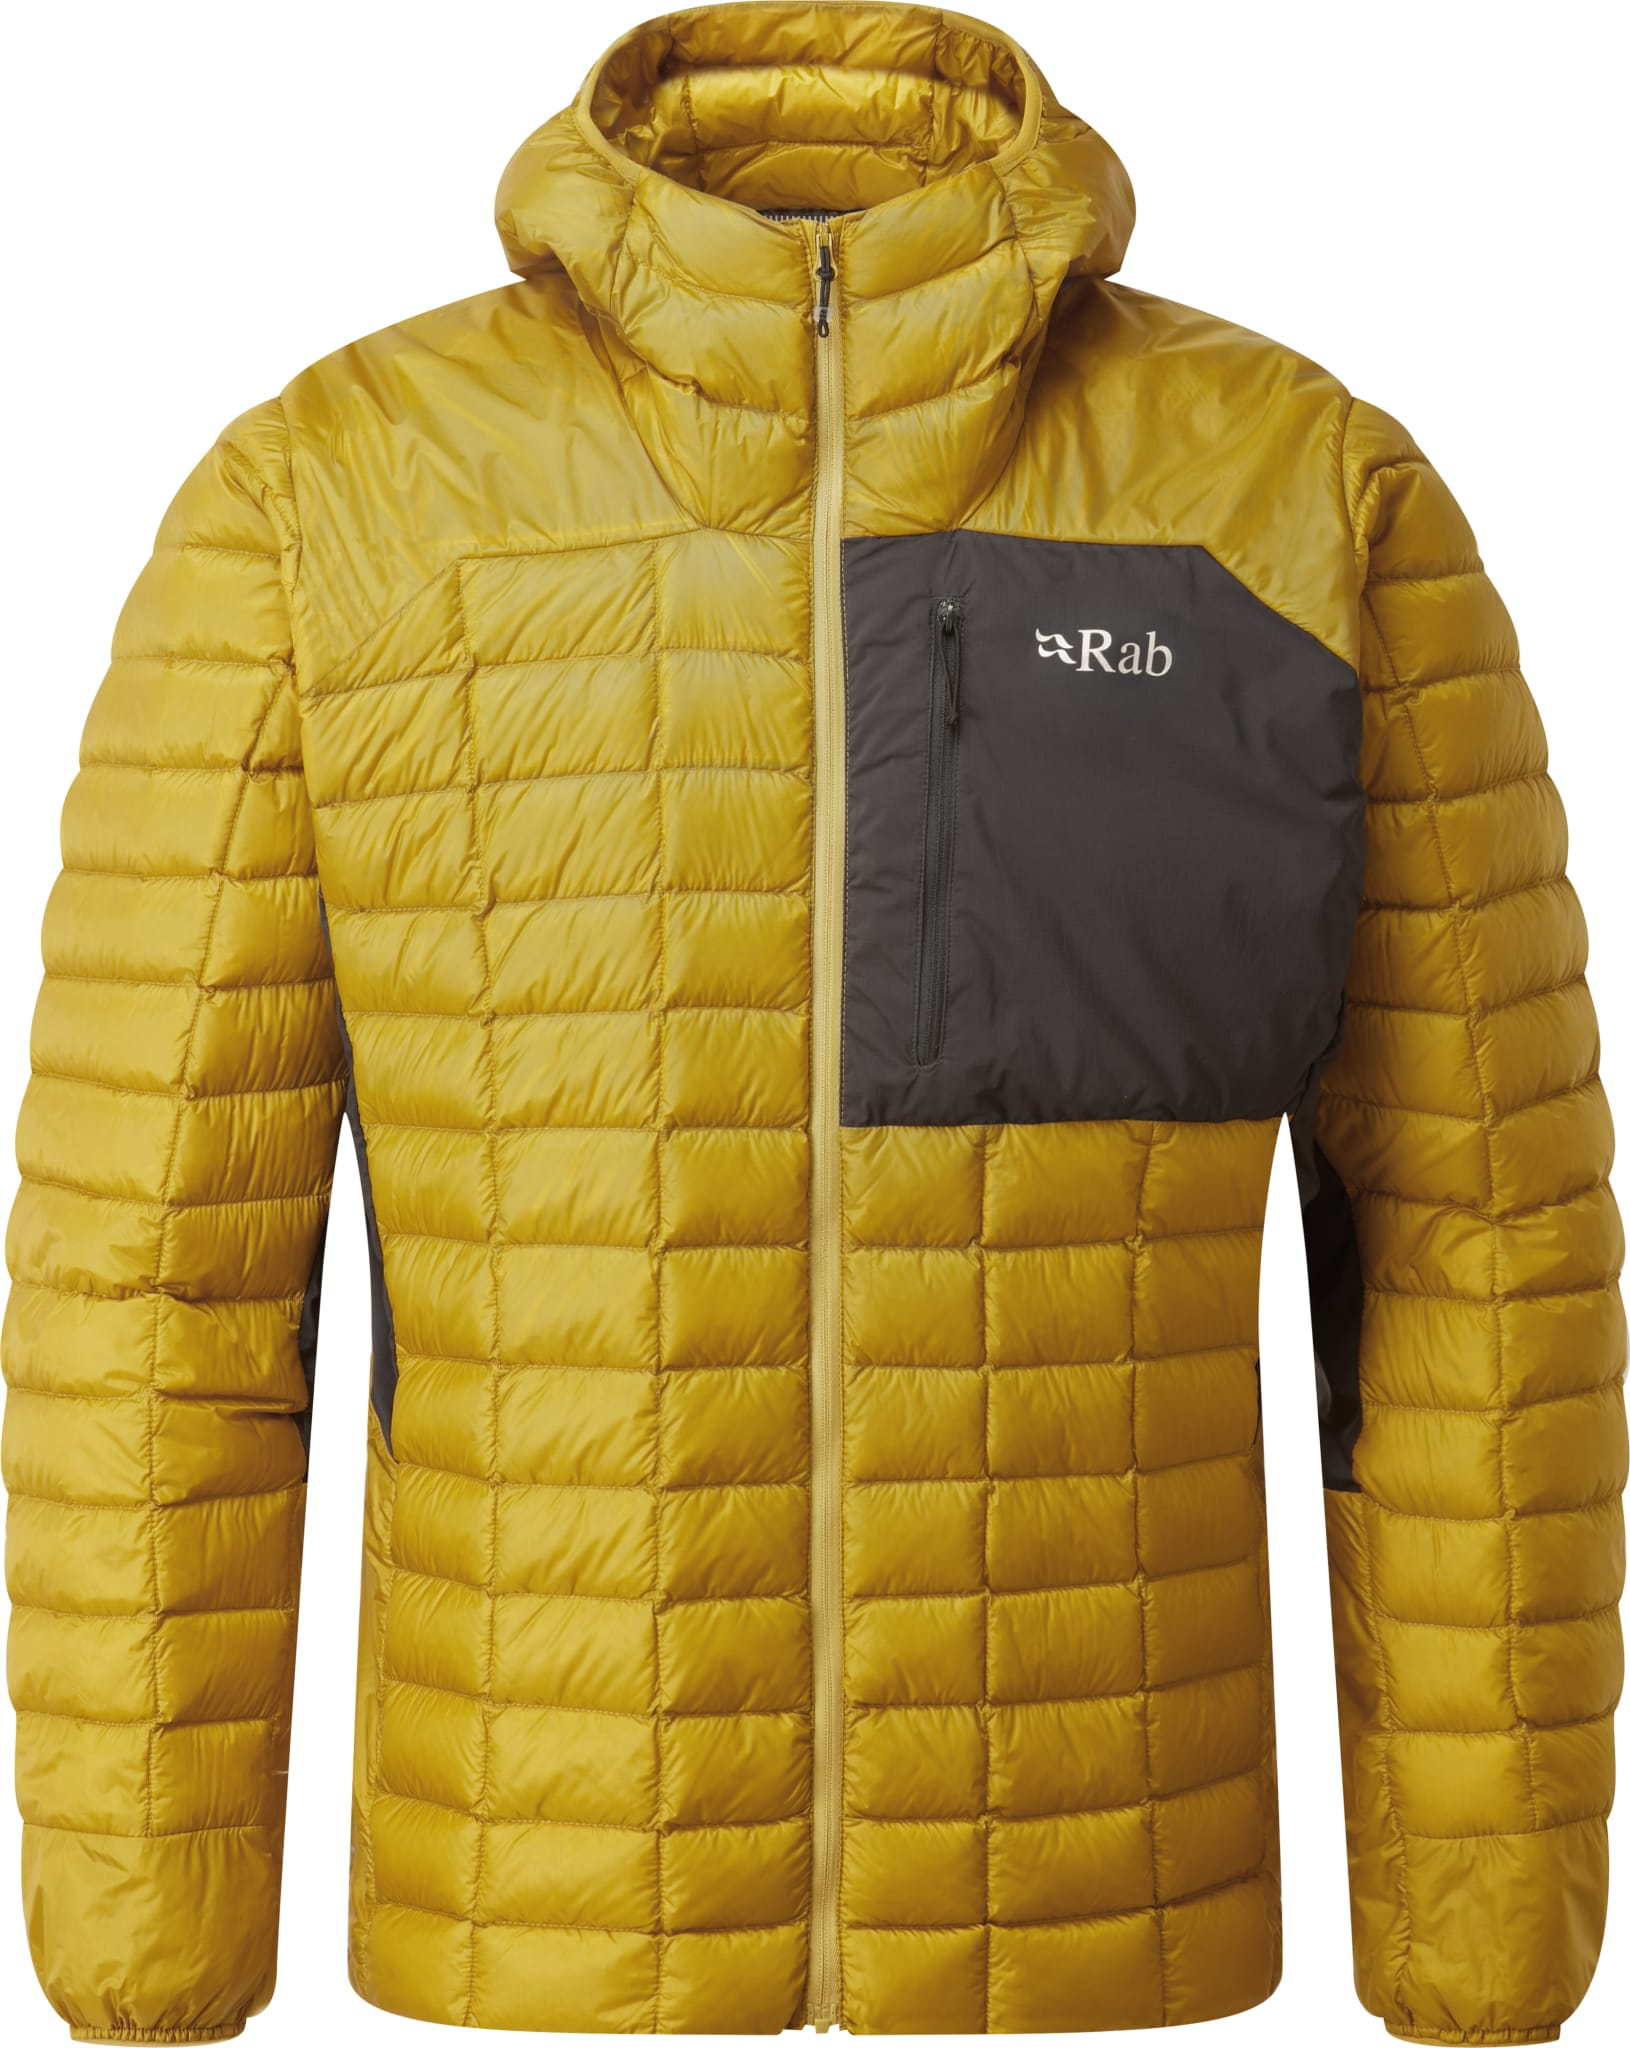 Kaon Jacket Ms